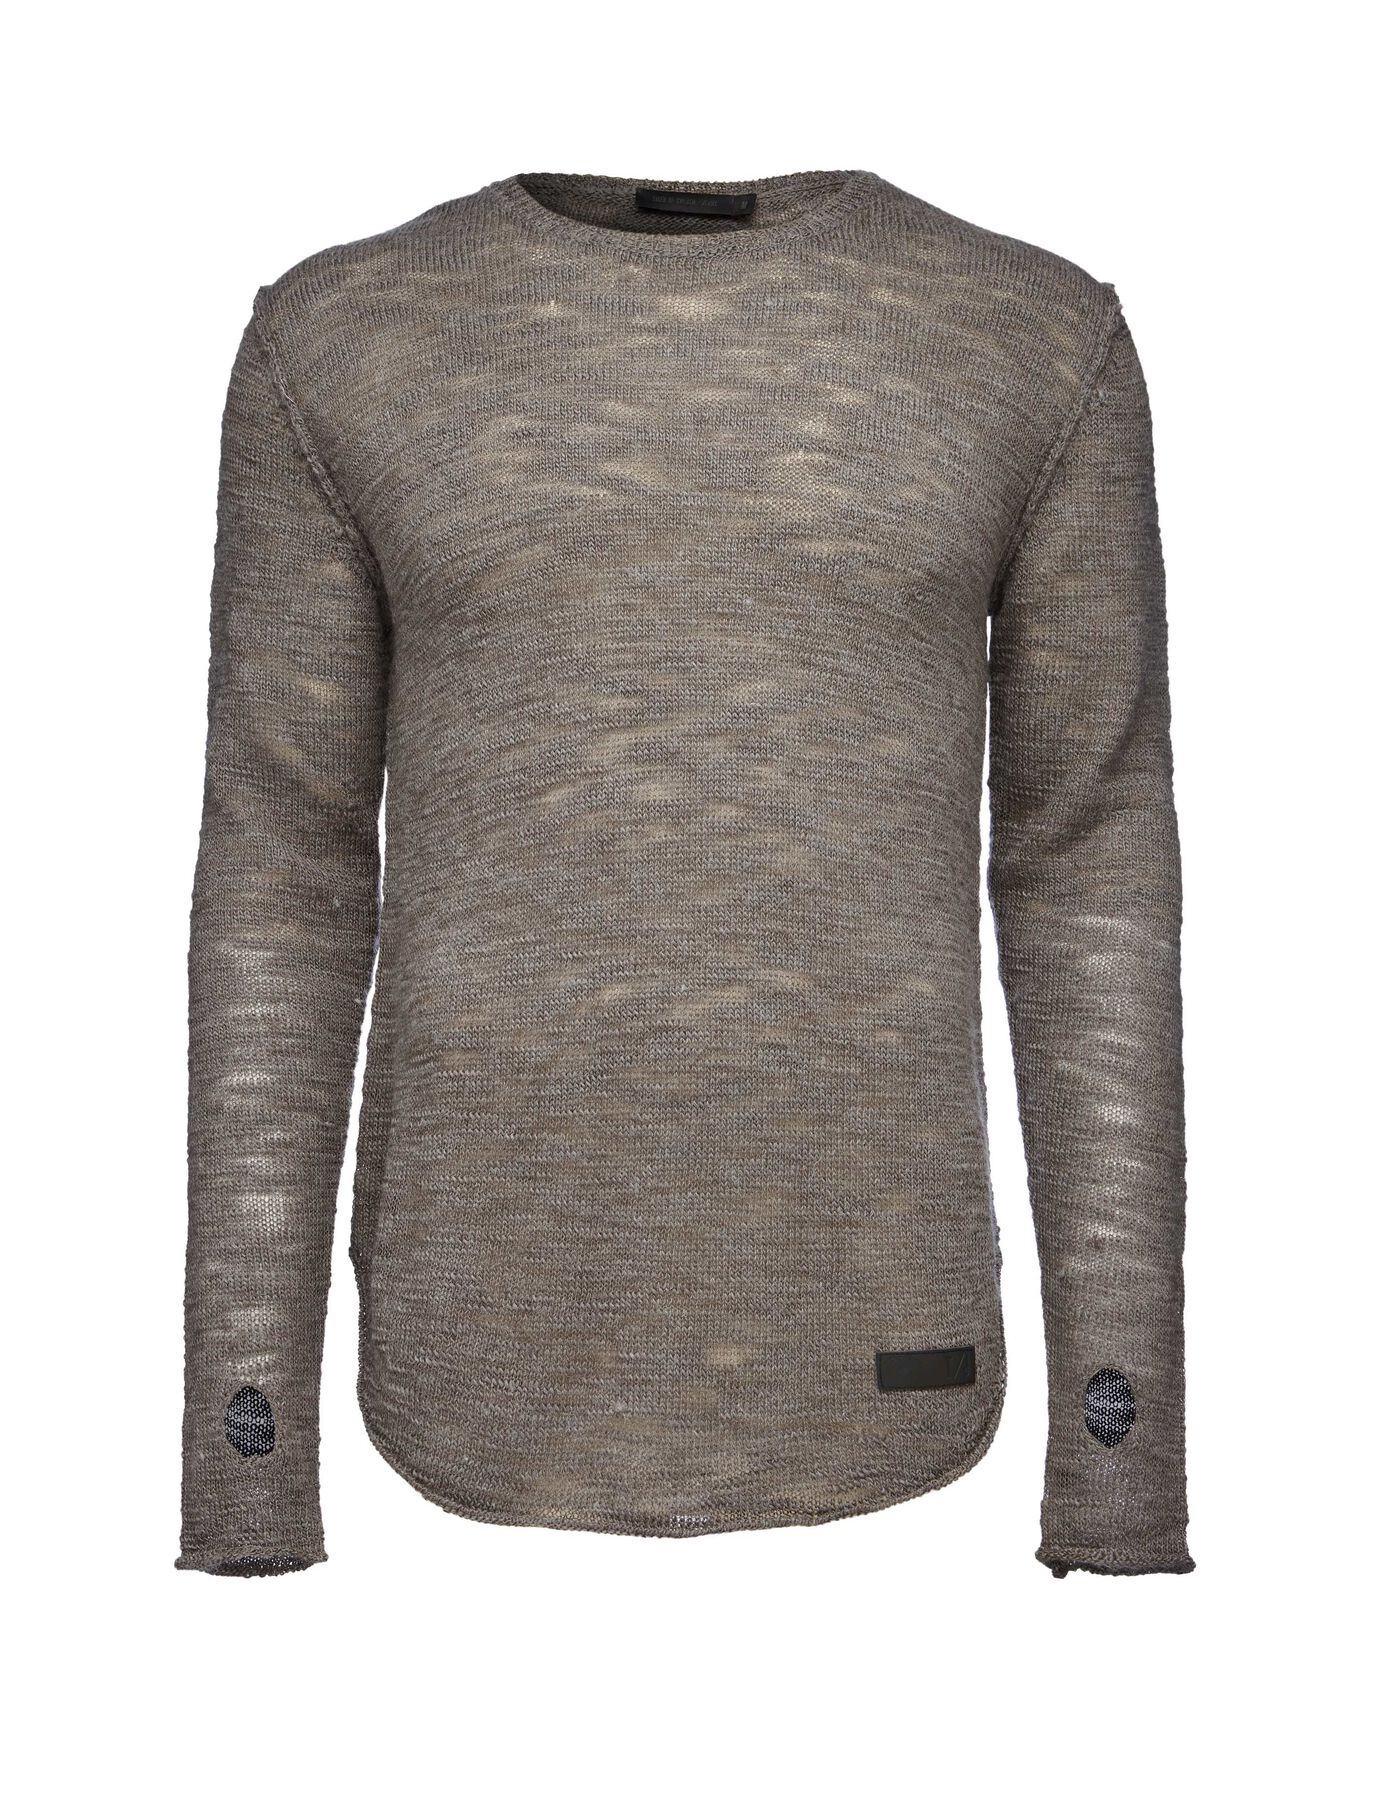 Rip pullover in Grey Shadow from Tiger of Sweden